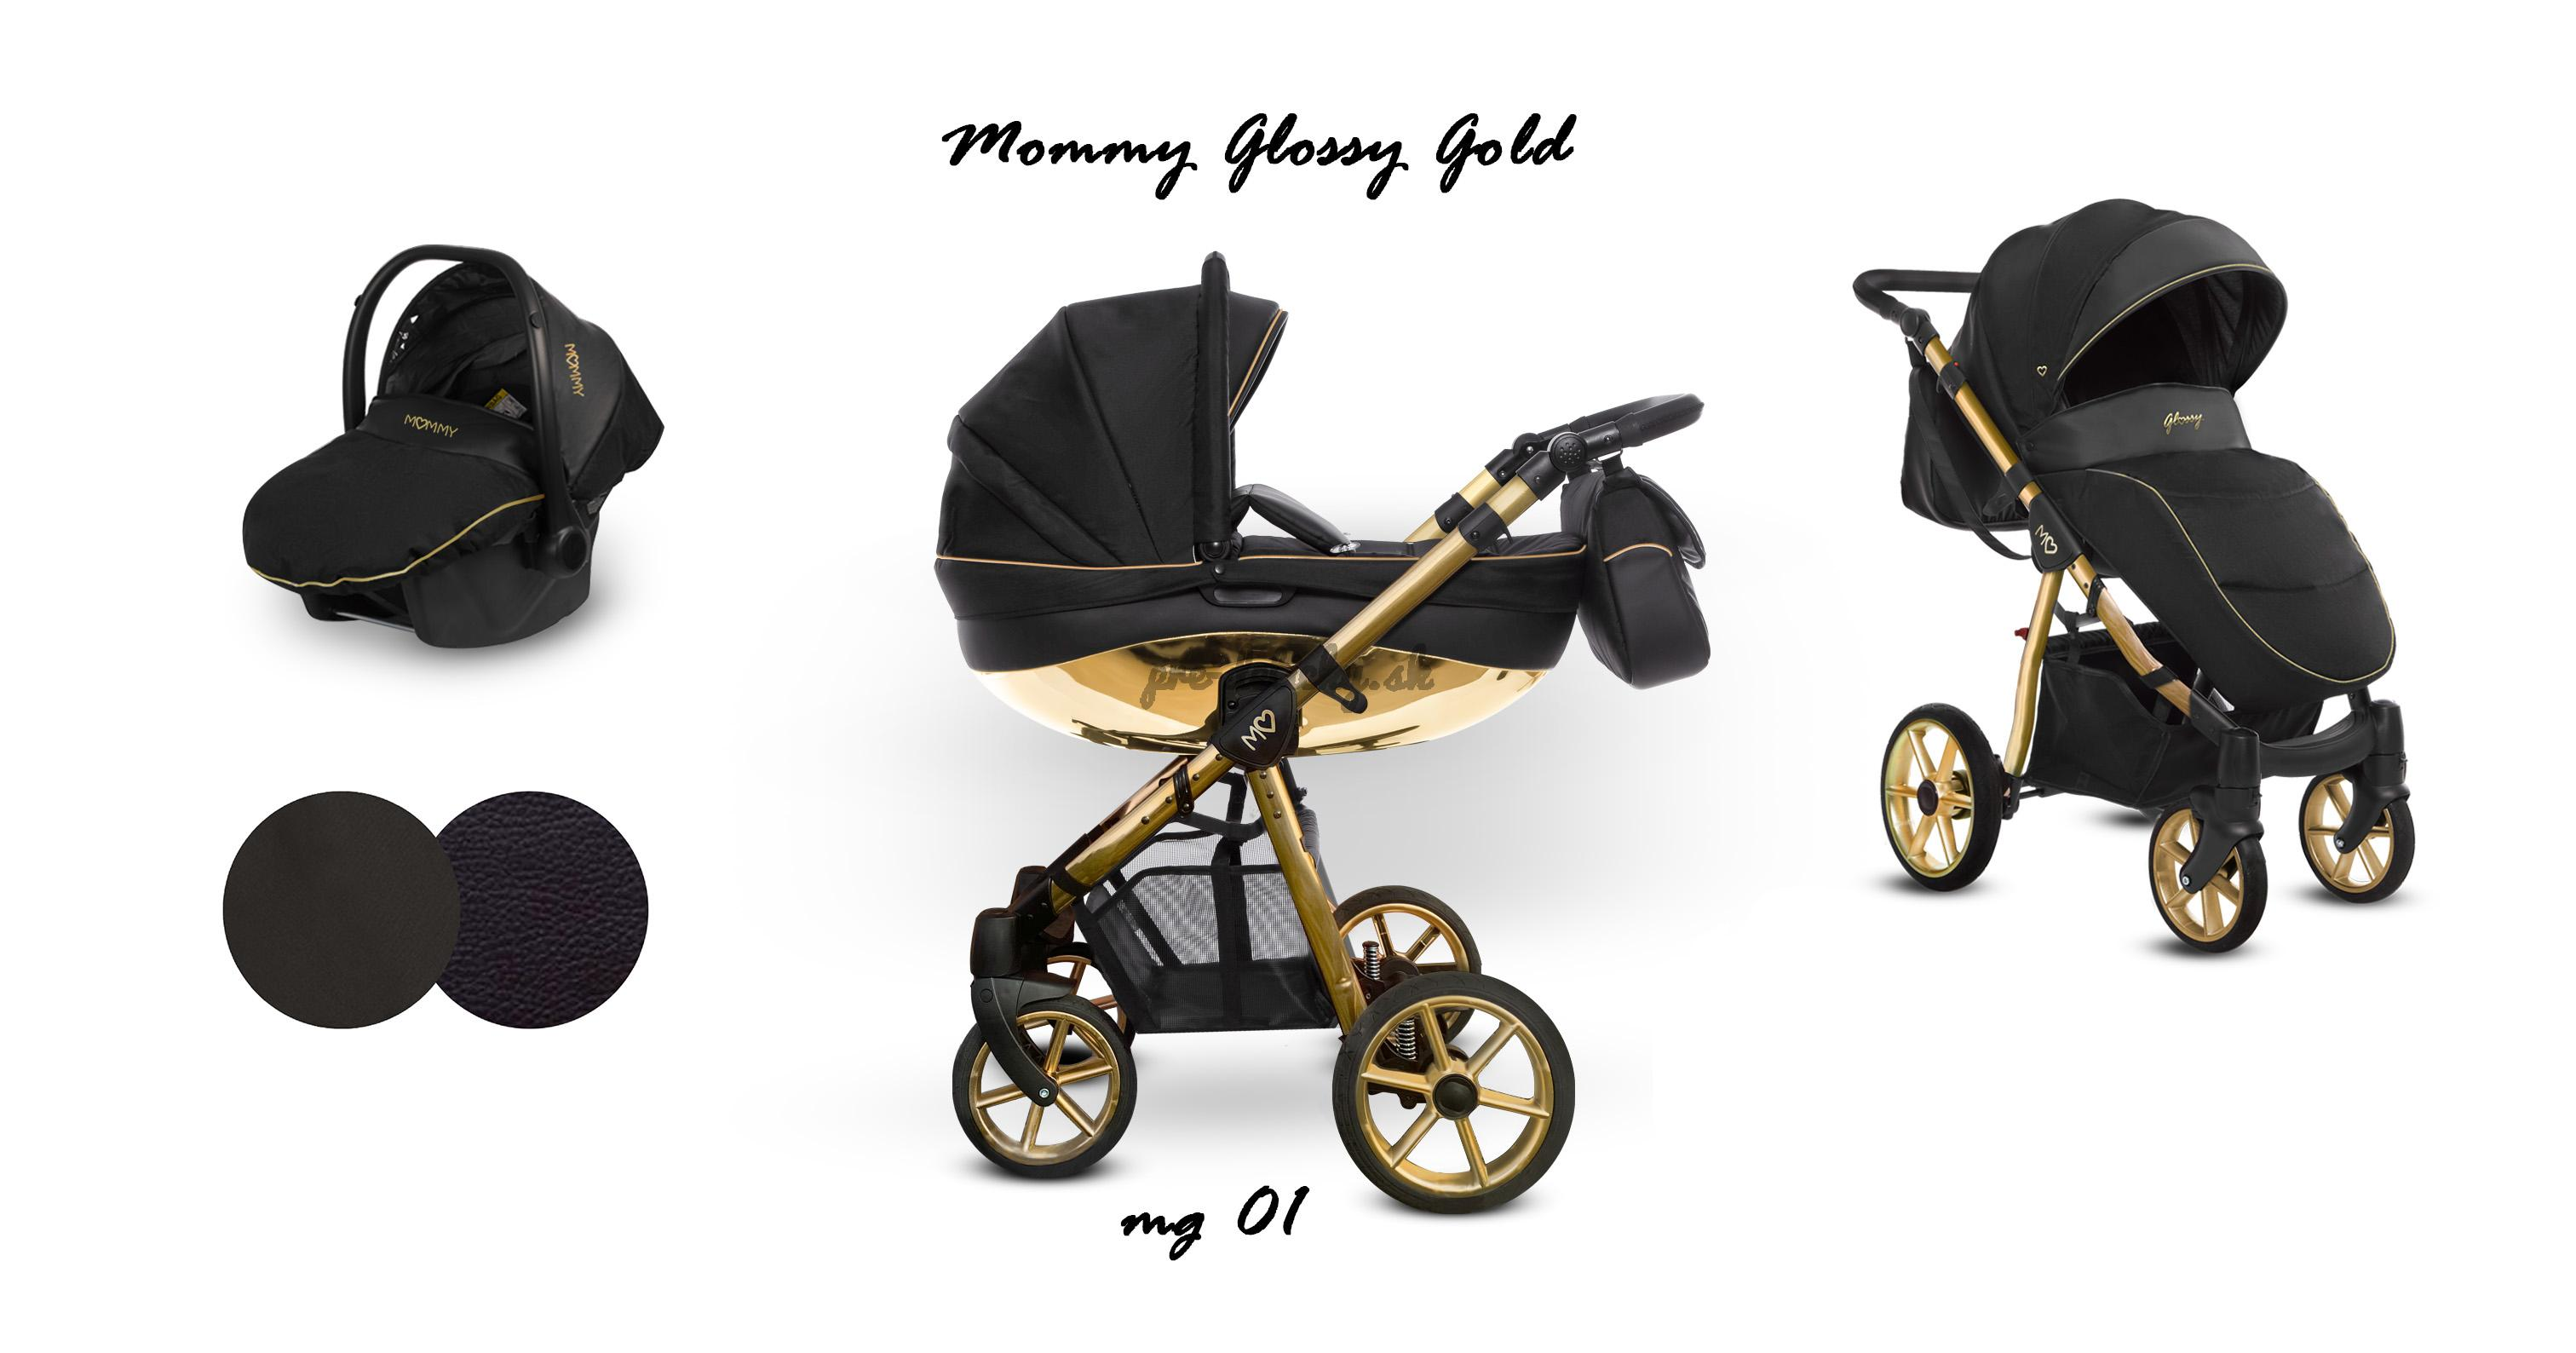 Baby Active Mommy Glossy